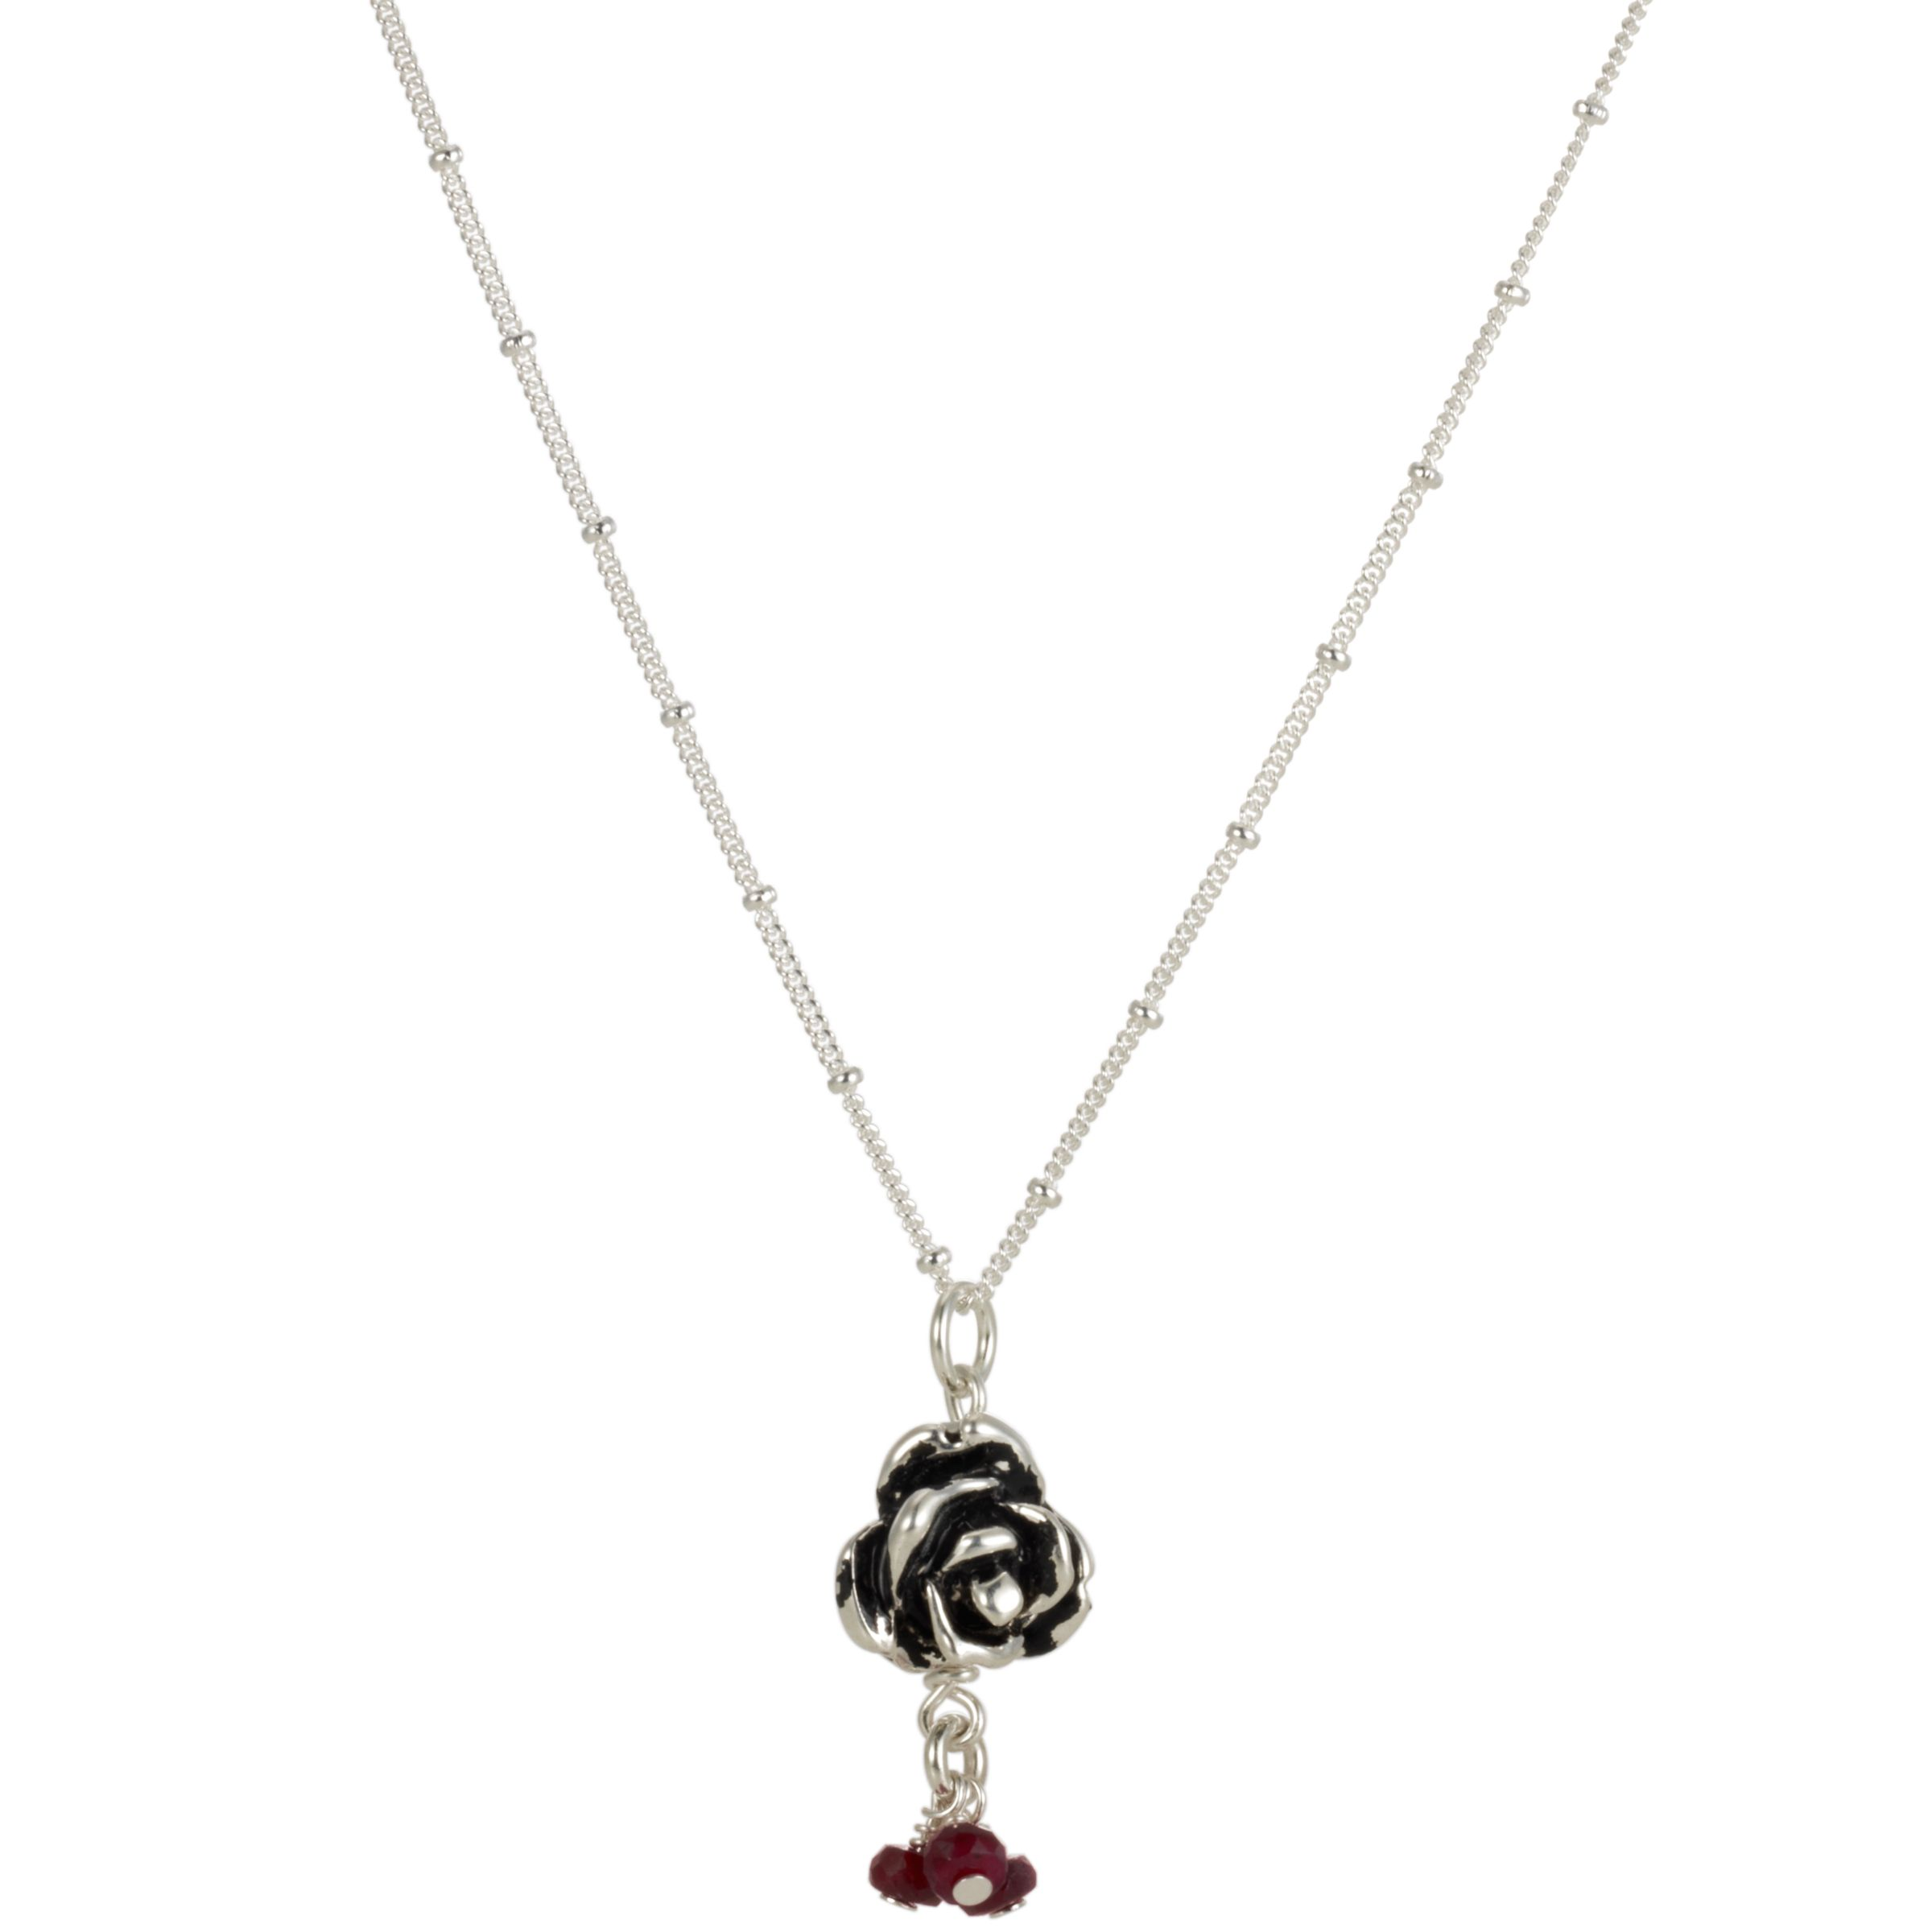 Martick Ruby Rose Pendant Necklace